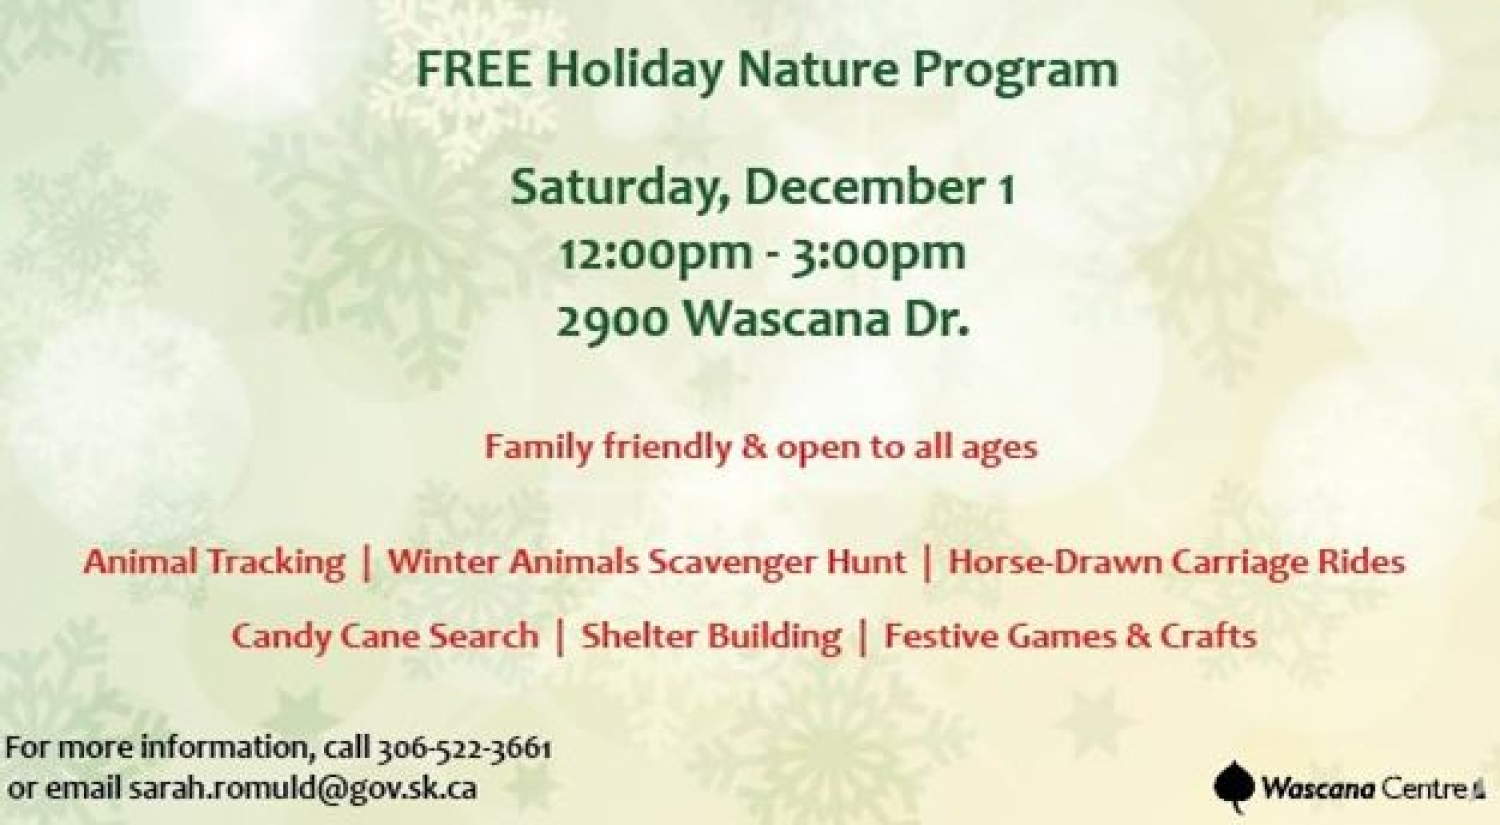 Free Holiday Nature Program - Dec 1st